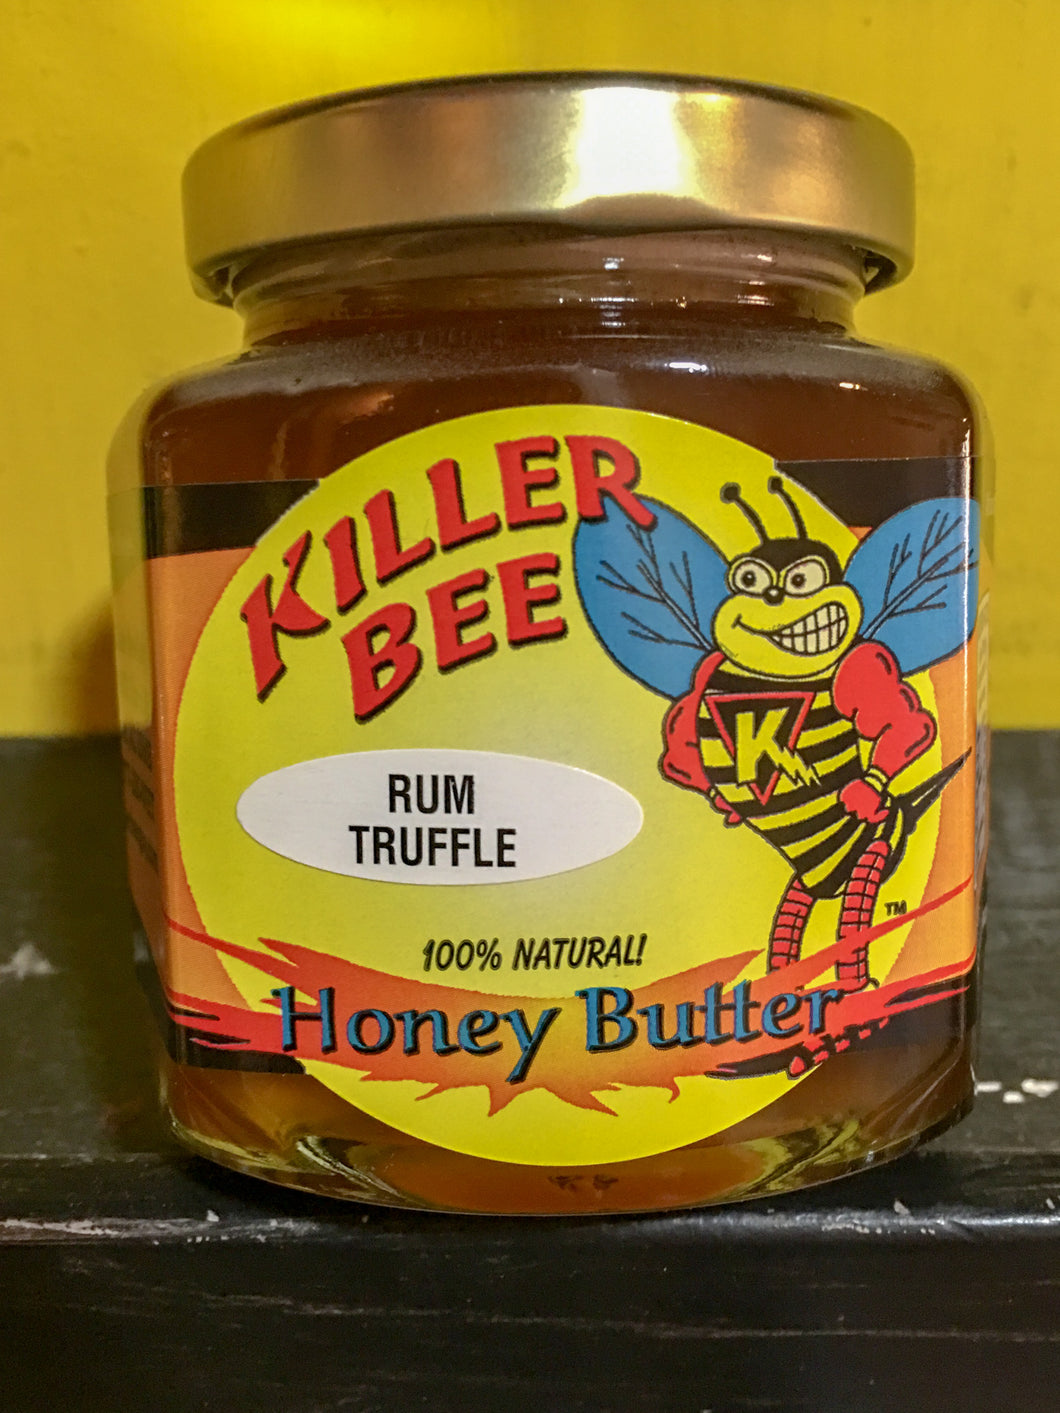 Rum Truffle Honey Butter